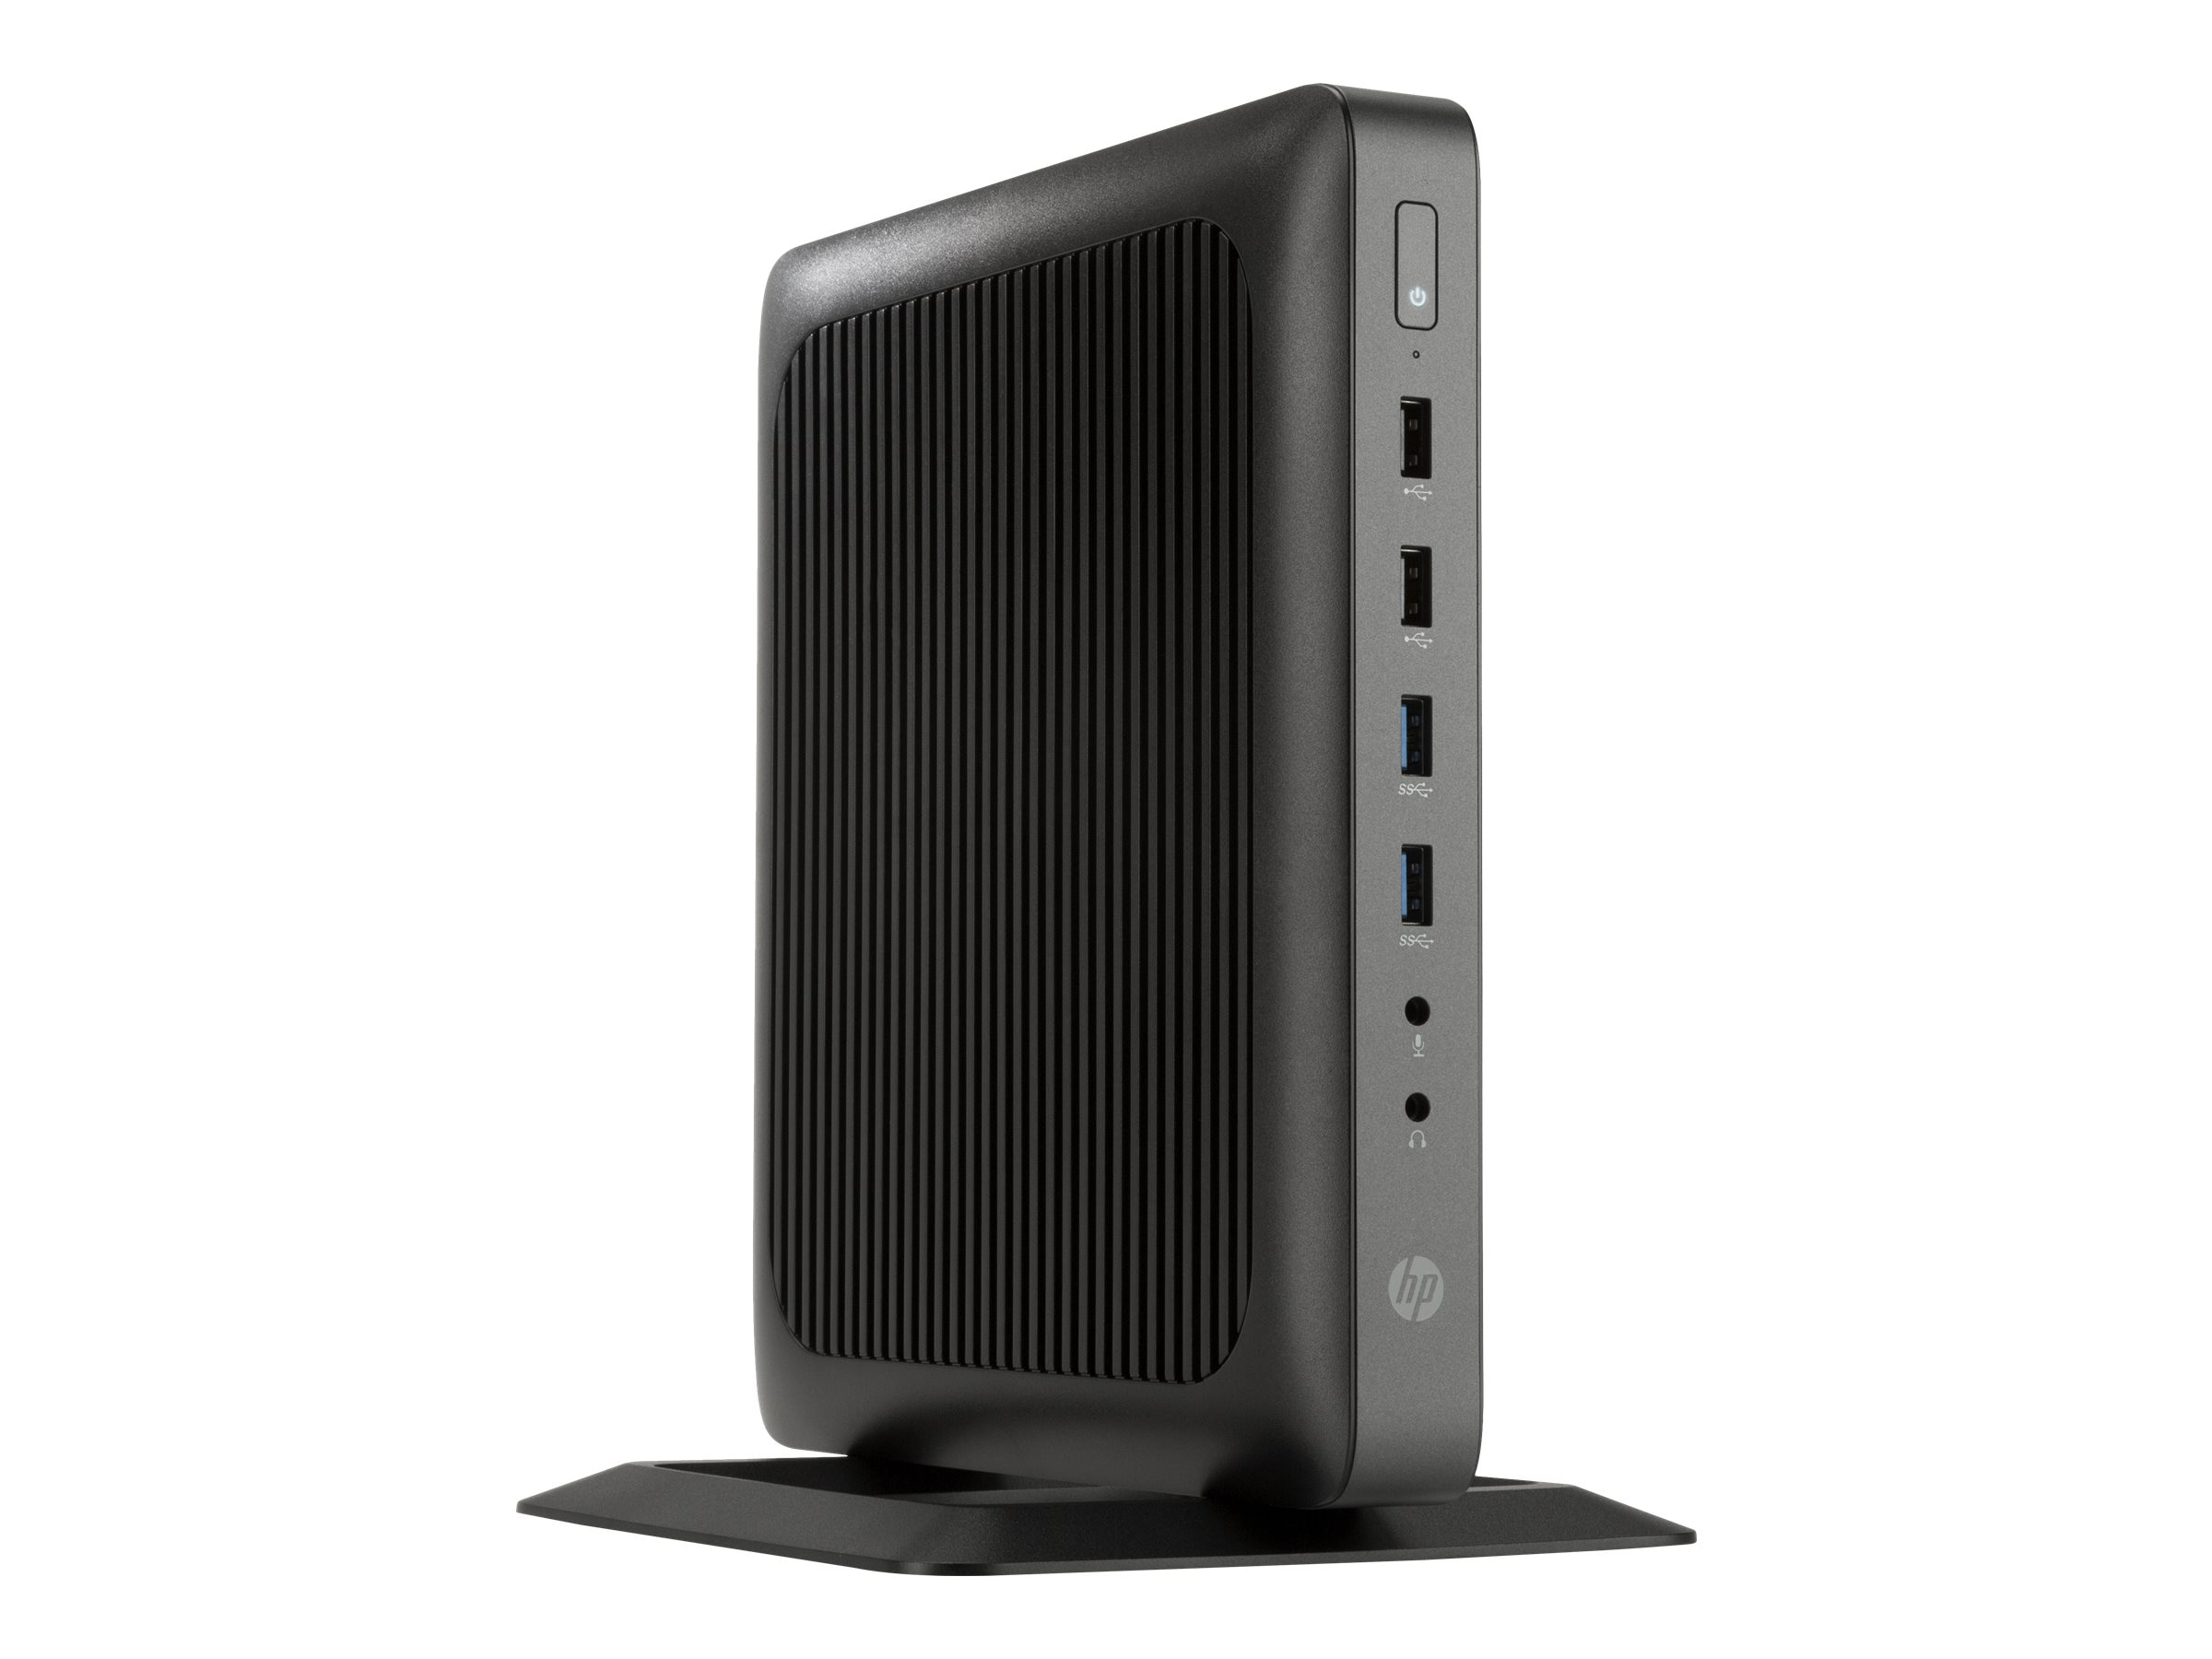 HP t620 Flexible Thin Client AMD QC GX-415GA 1.5GHz 4GB 8GB Flash HD8330E ac BT VGA SmartZero, W5Z09UA#ABA